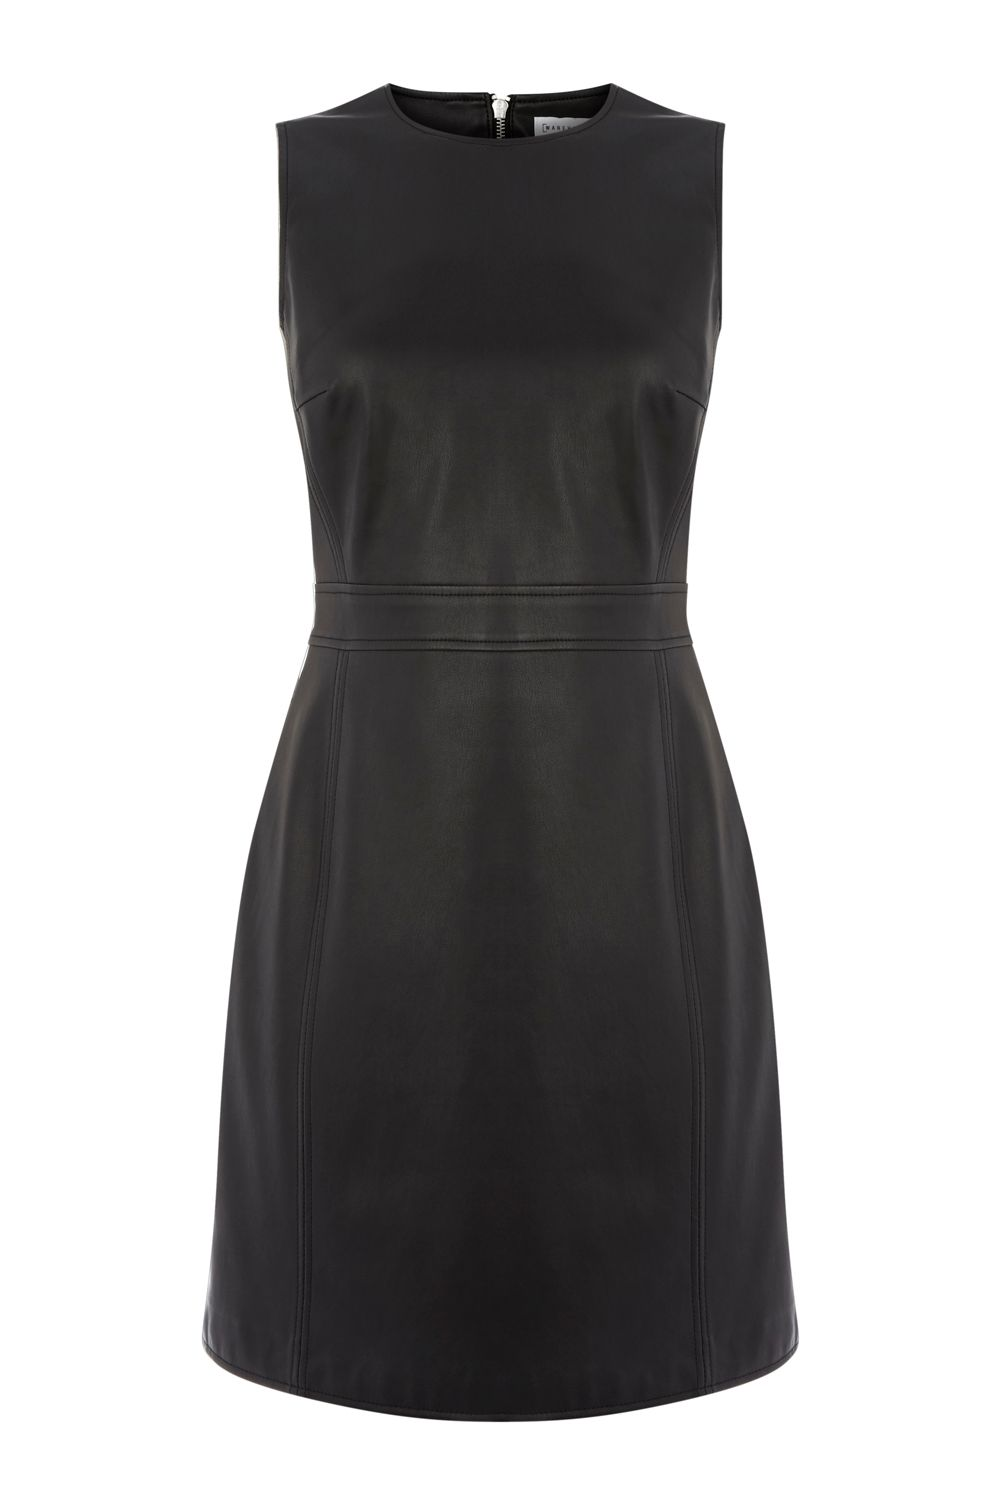 Warehouse Faux Leather Dress, Black